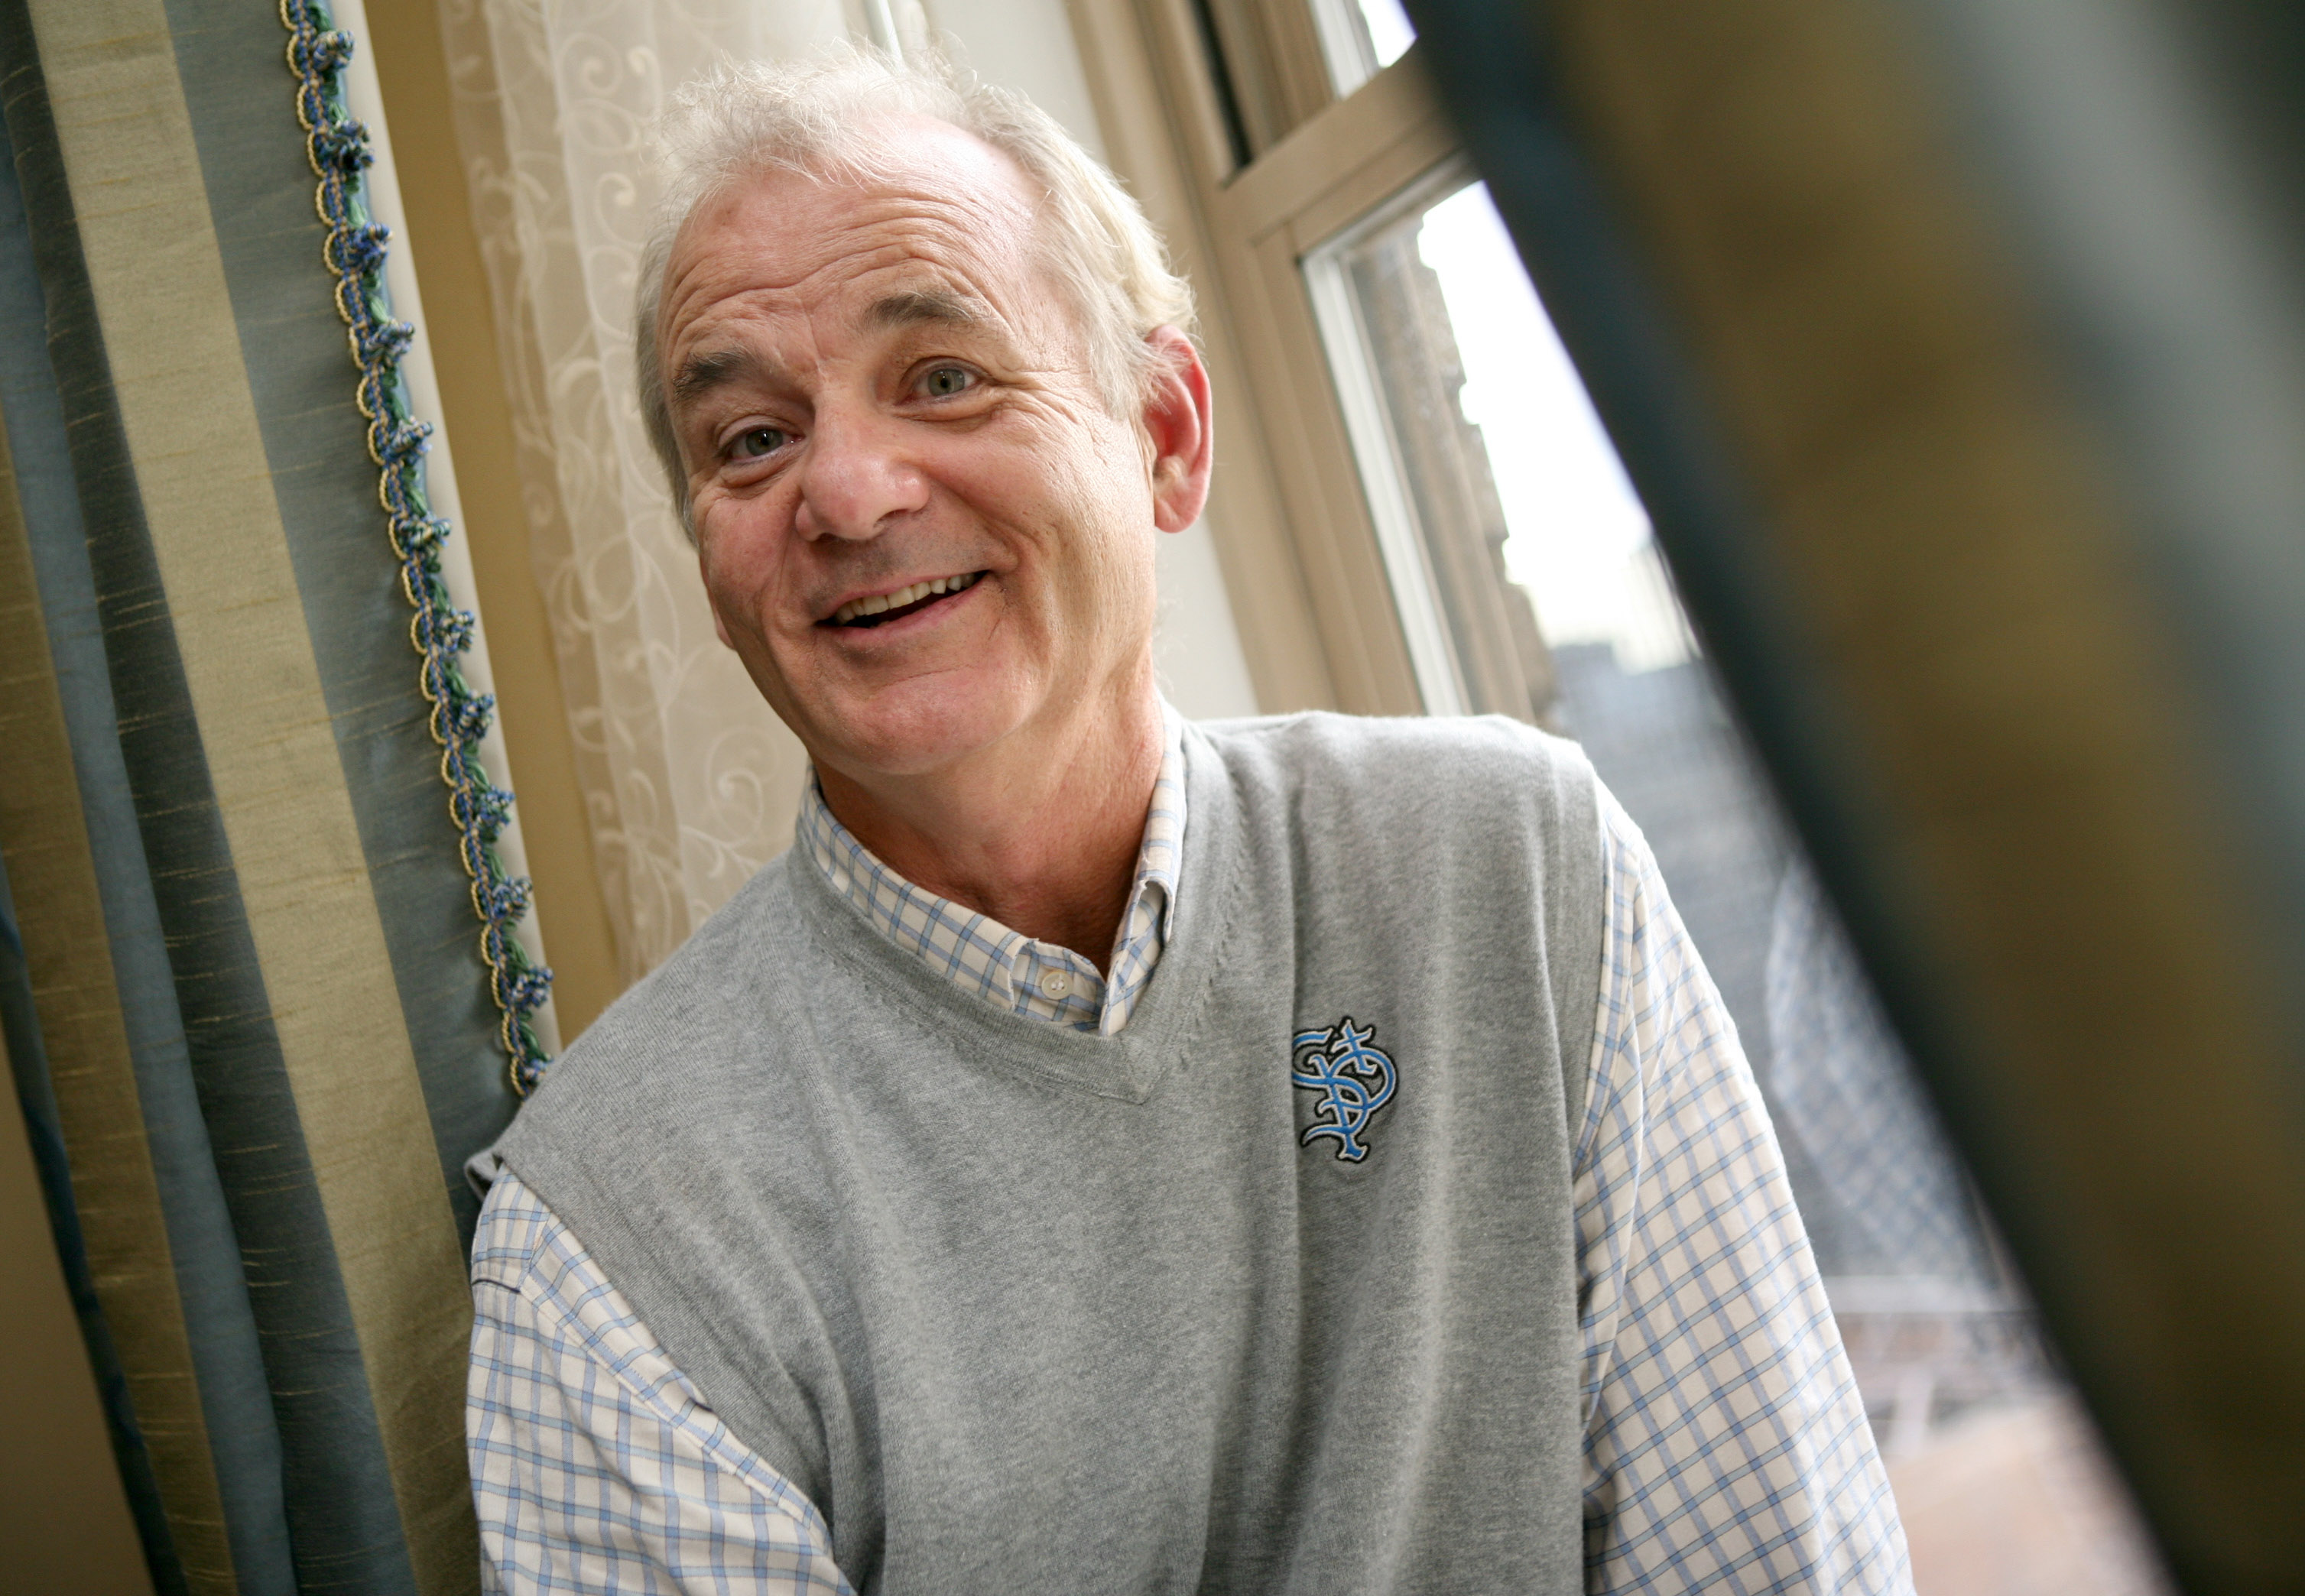 bill murray hd wallpaper - photo #42